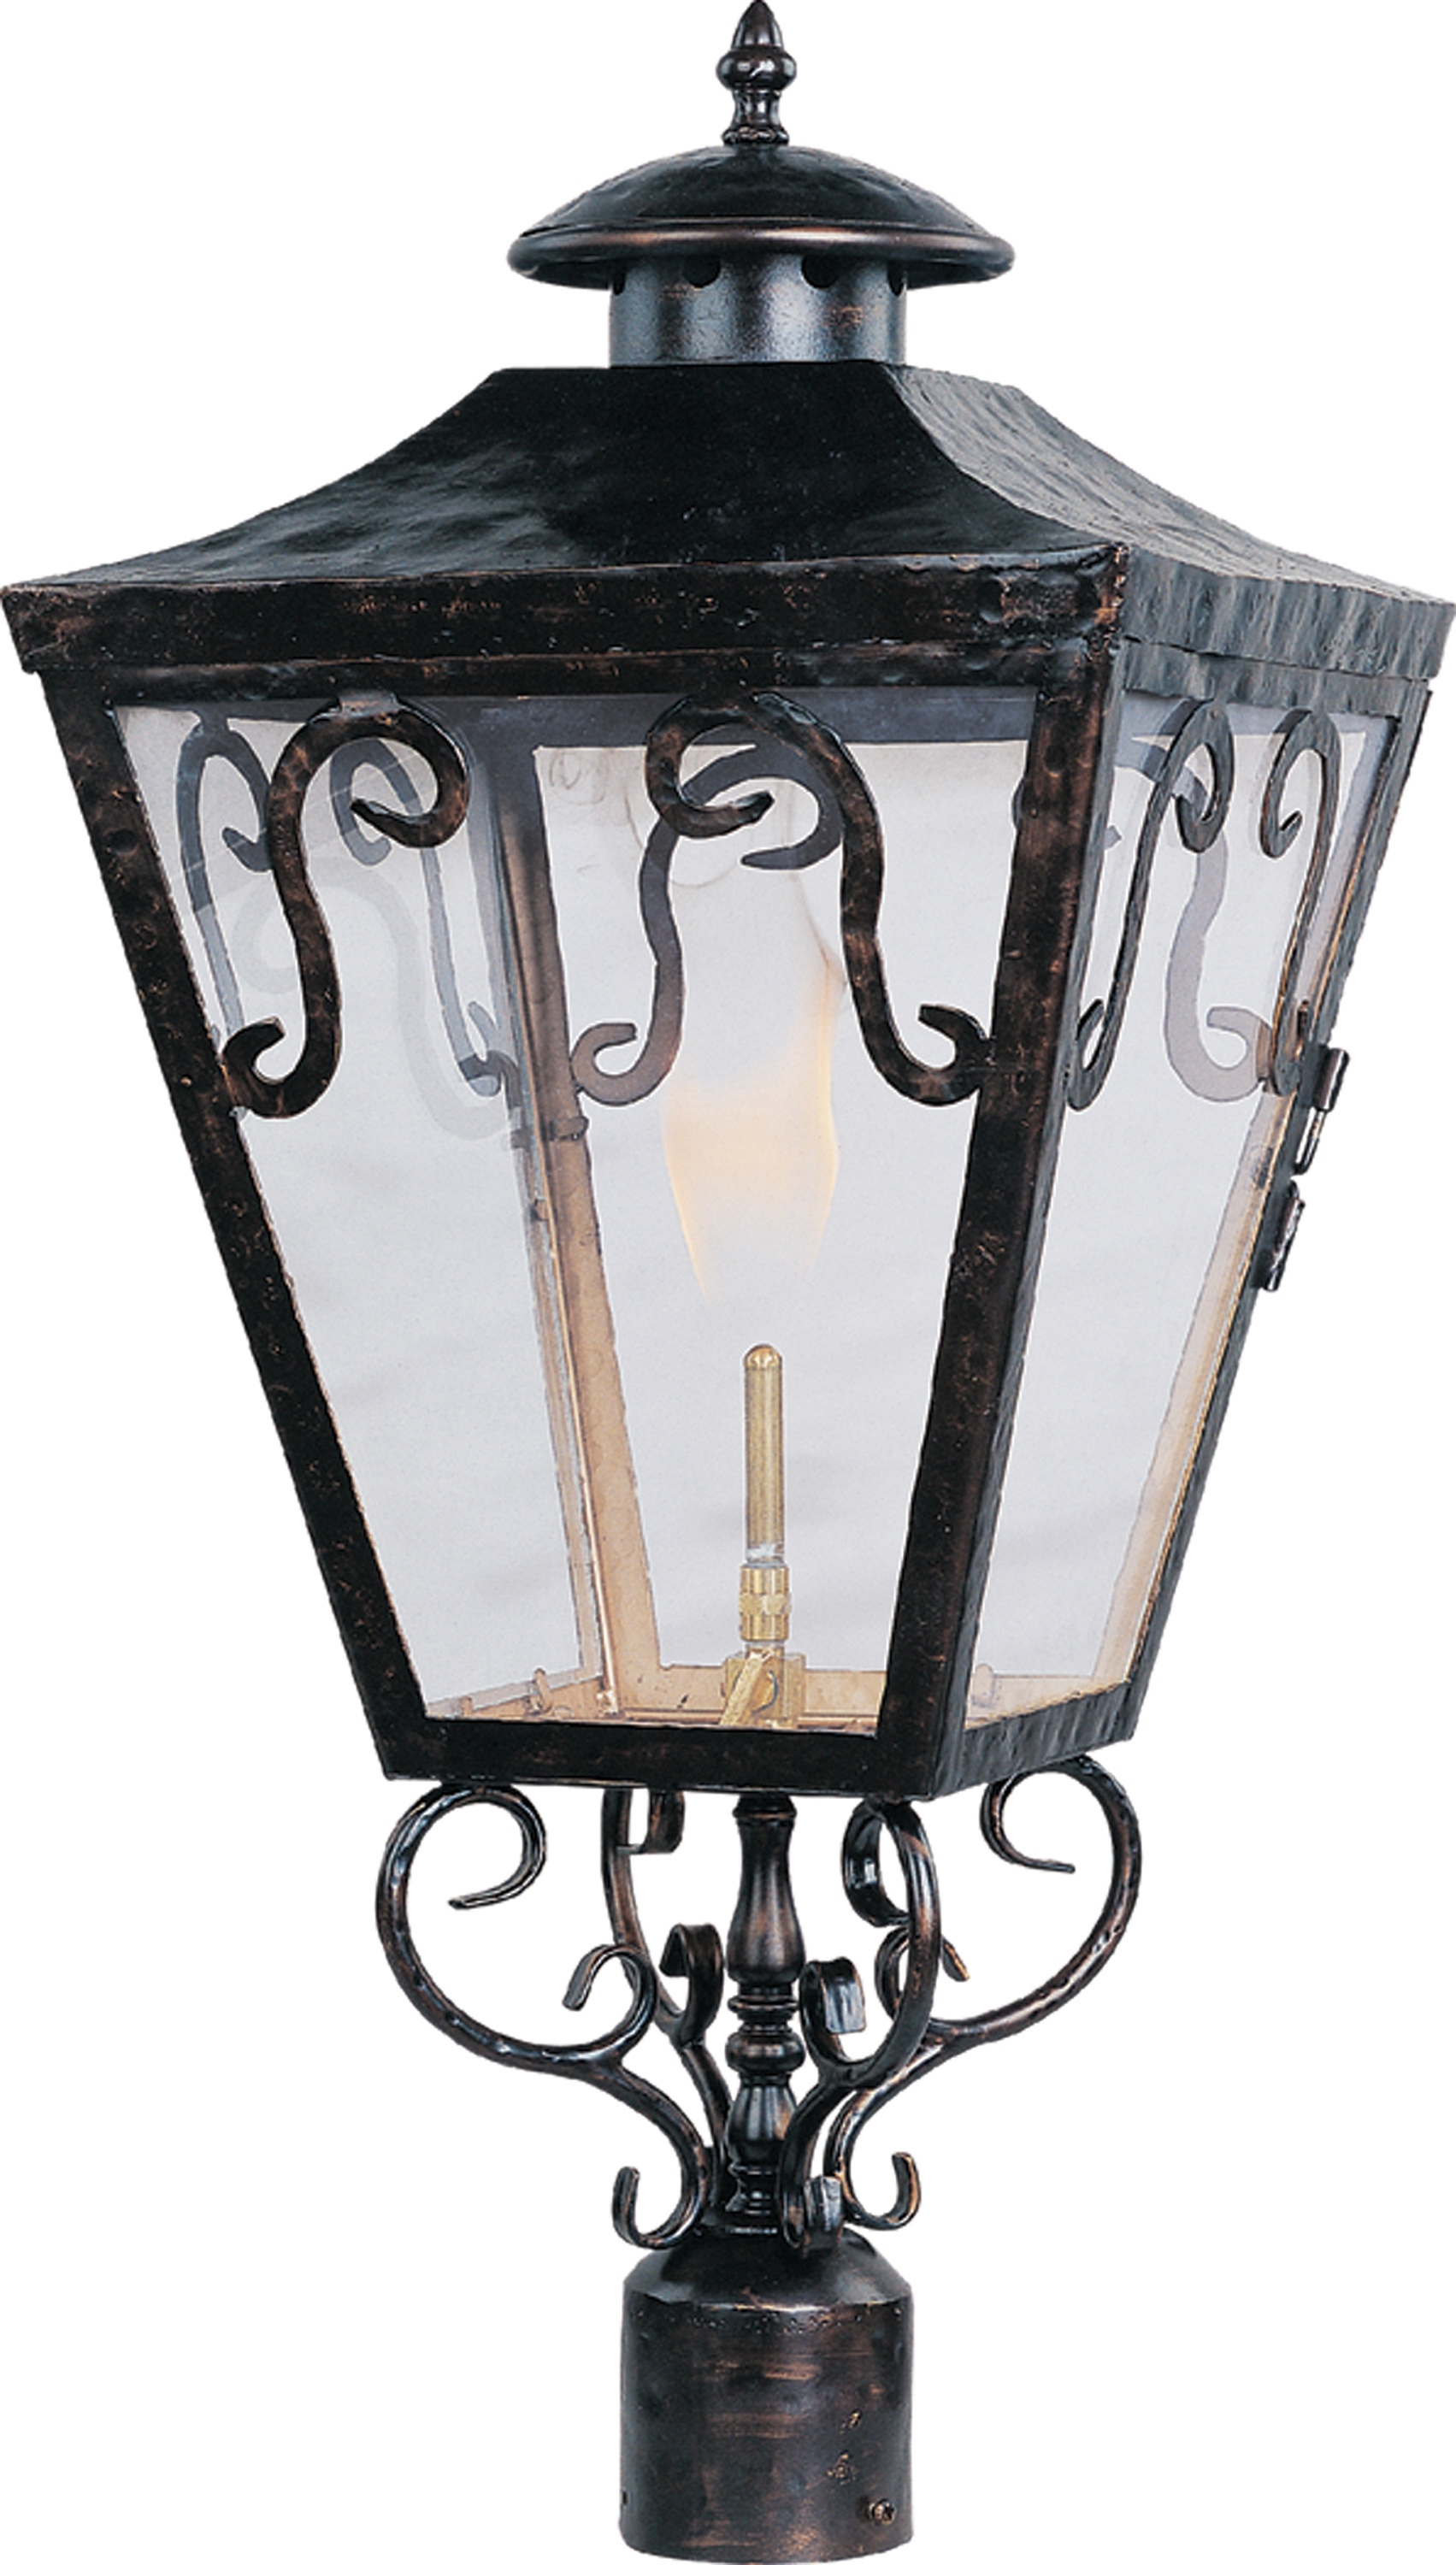 Cordoba Outdoor Post Gas Lantern - Outdoor Pole/post Mount - Maxim pertaining to Outdoor Pole Lanterns (Image 7 of 20)